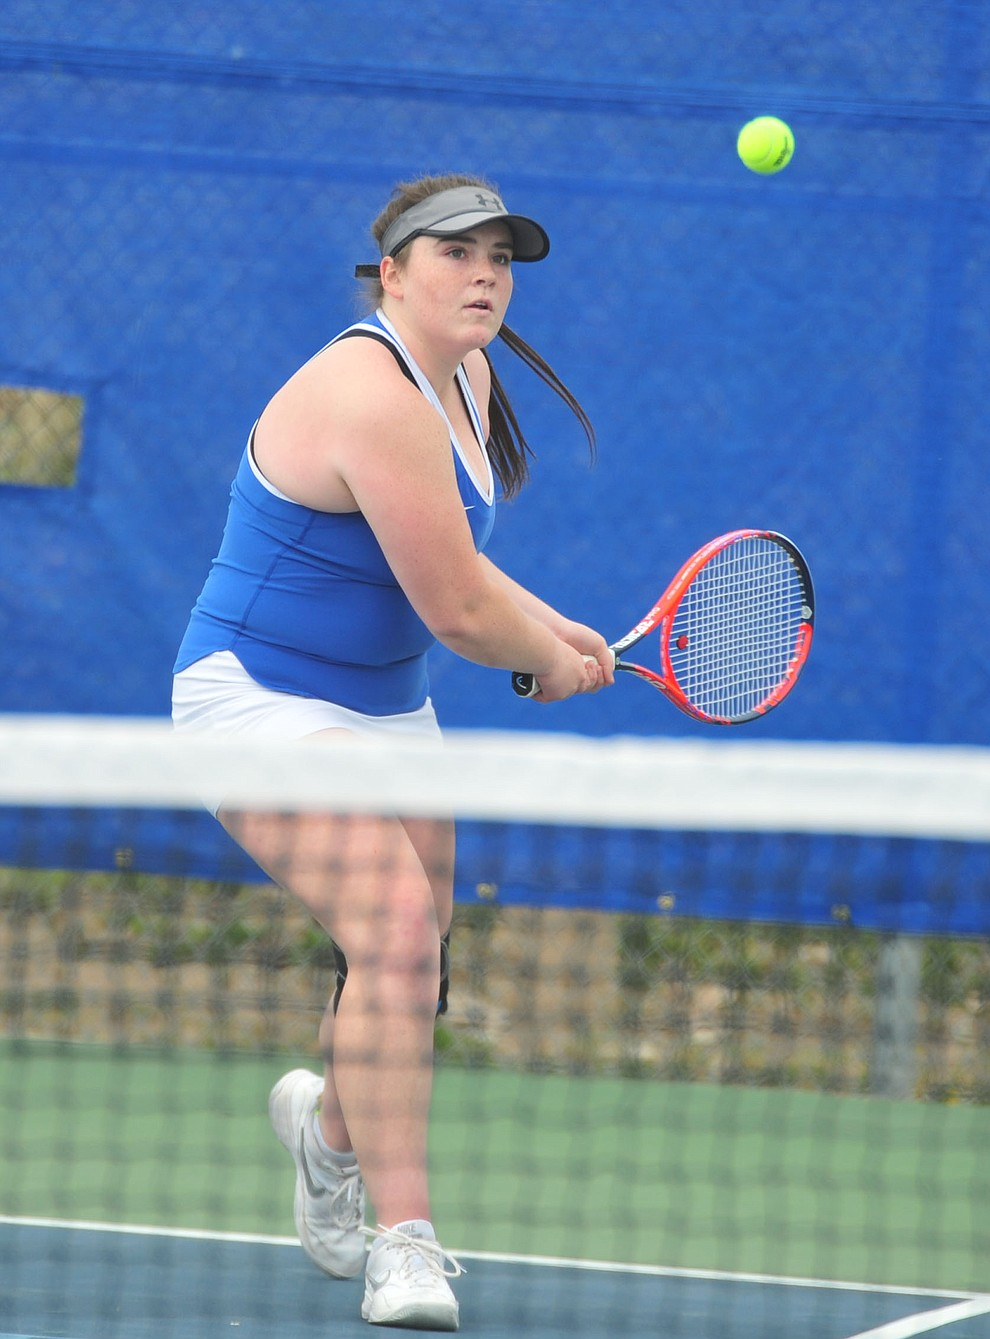 Prescott's Ellie Fenderson hits a return shot as the Badgers play Ironwood Ridge in the first round of the Arizona Interscholastic Association State Team Tennis Tournament Tuesday, April 23 in Prescott.  (Les Stukenberg/Courier)